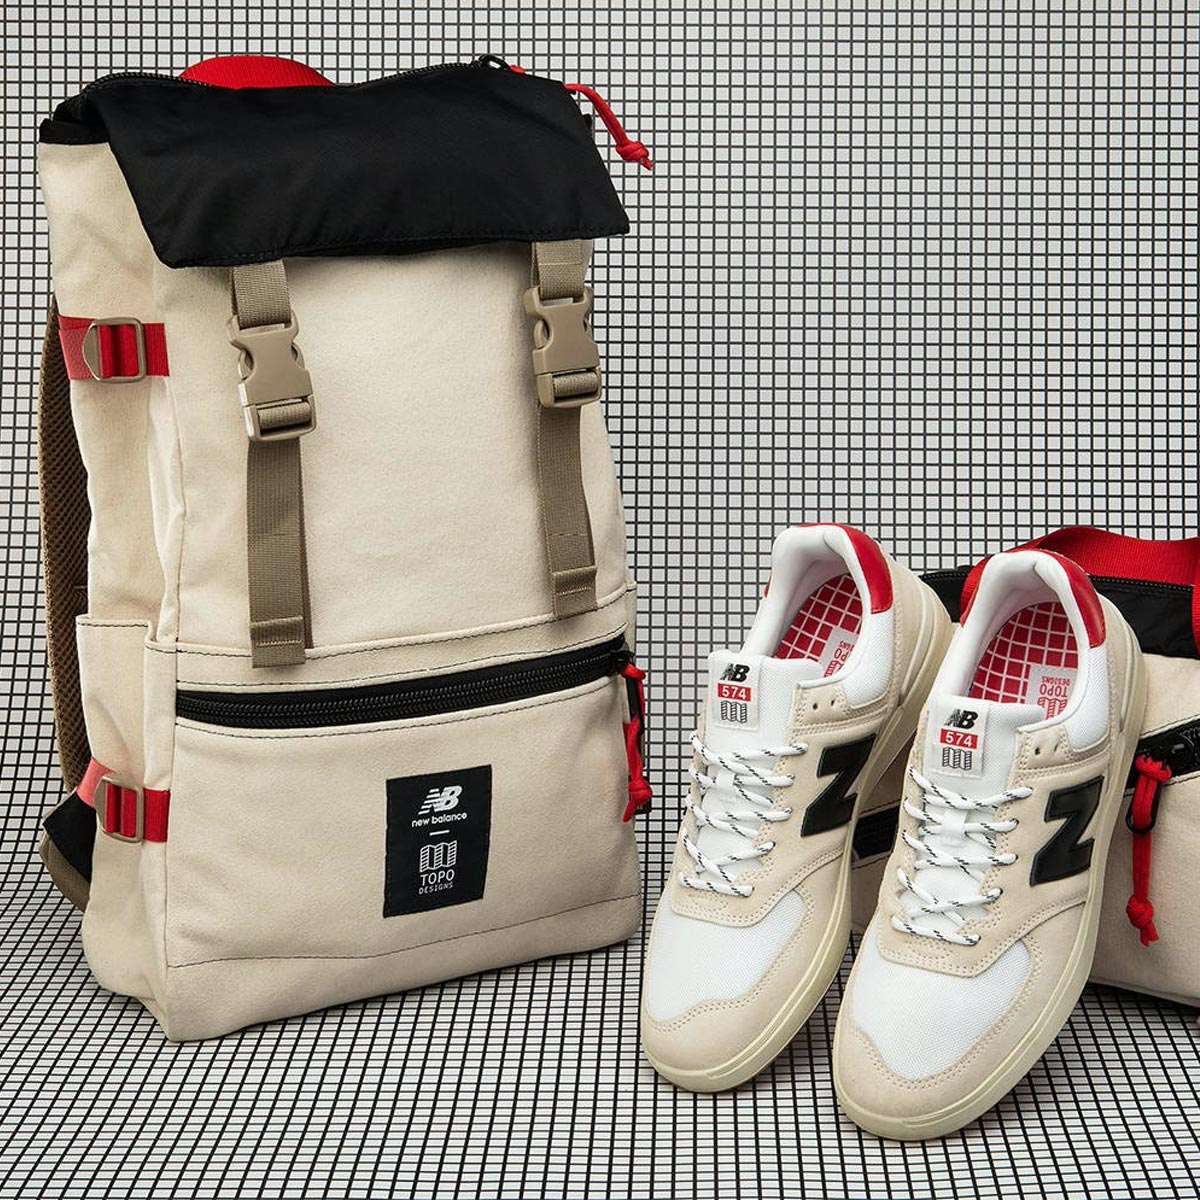 Topo Designs x New Balance Rover Pack, introductie van de Topo Designs x New Balans samenwerking